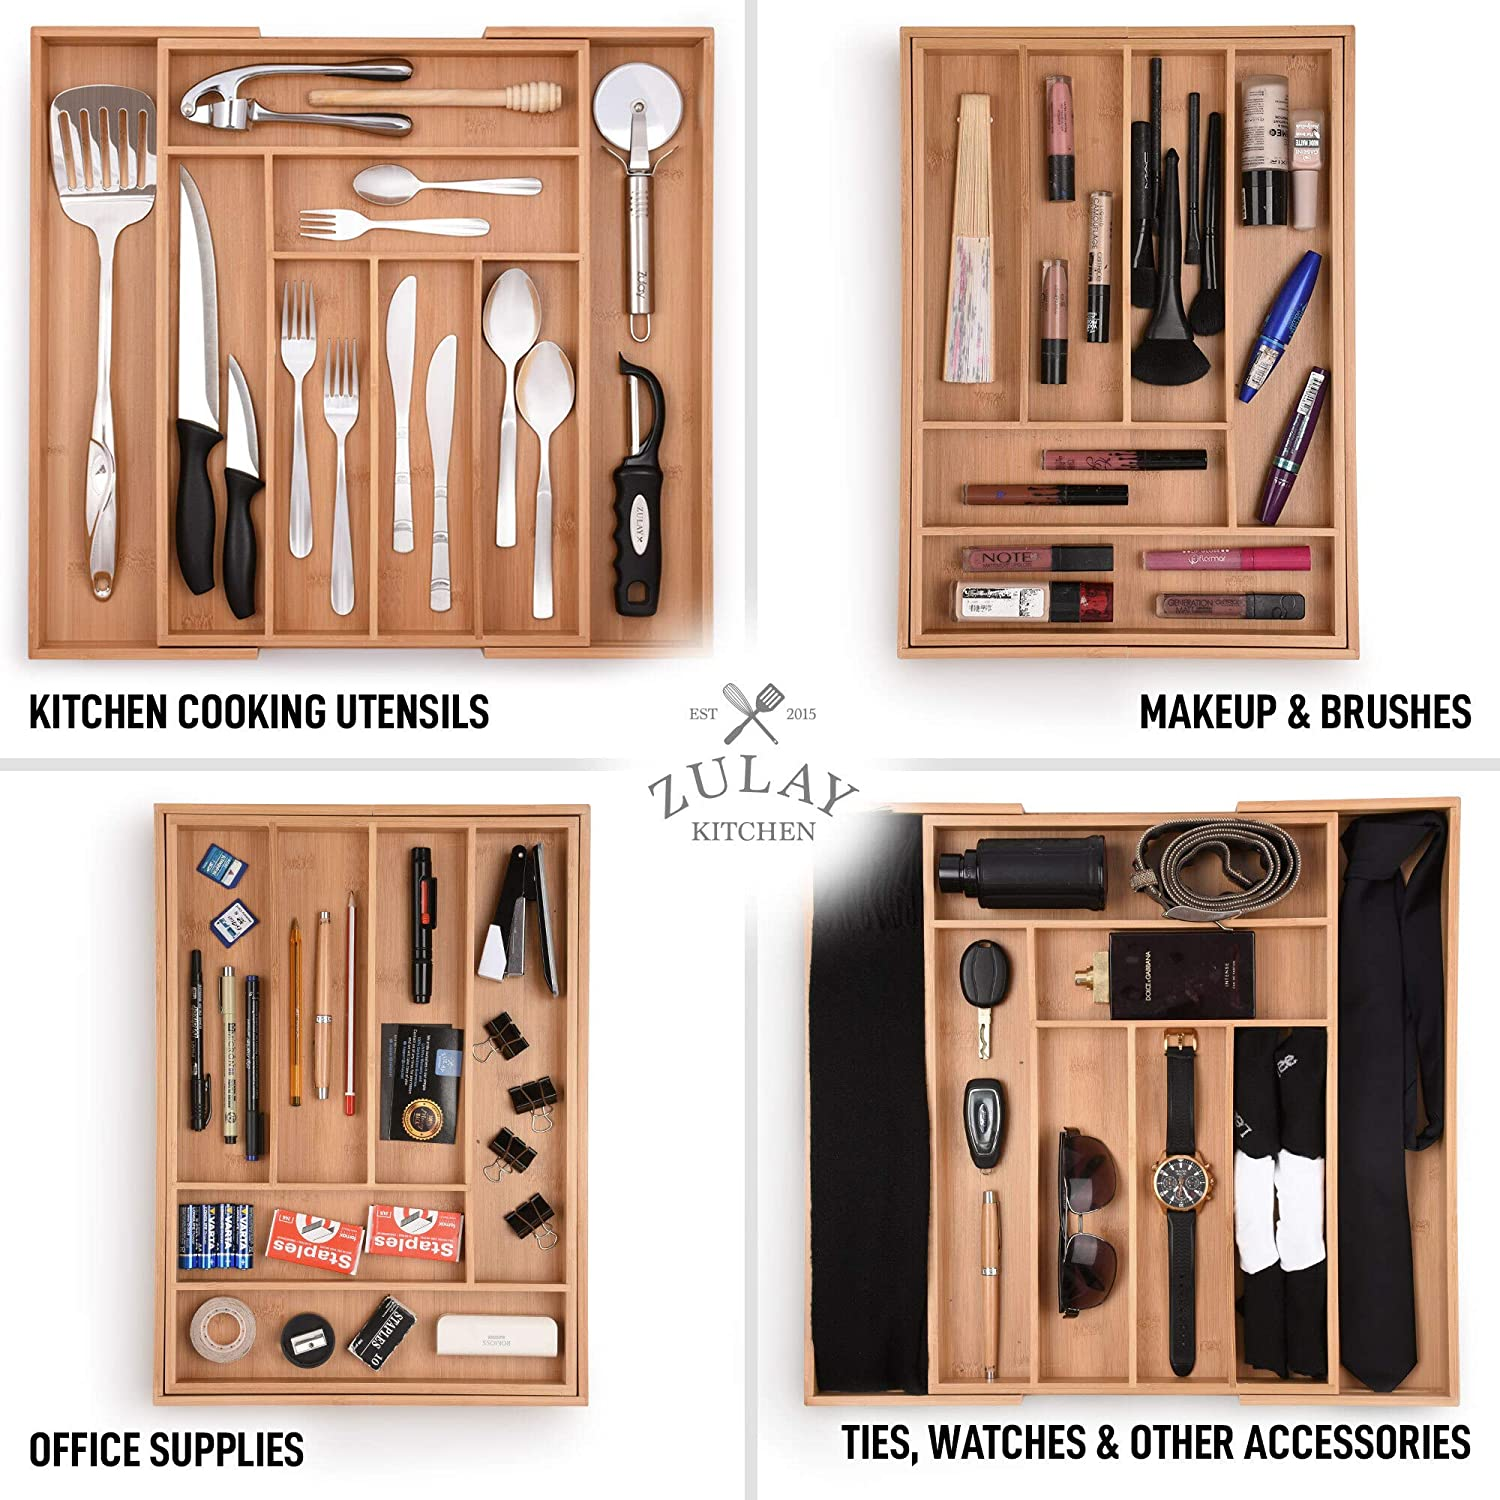 Perfect Utensil Organizer For Silverware Adjustable Kitchen Drawer Organizer Flatware Zulay Expandable Bamboo Drawer Organizer Kitchen Knives and More